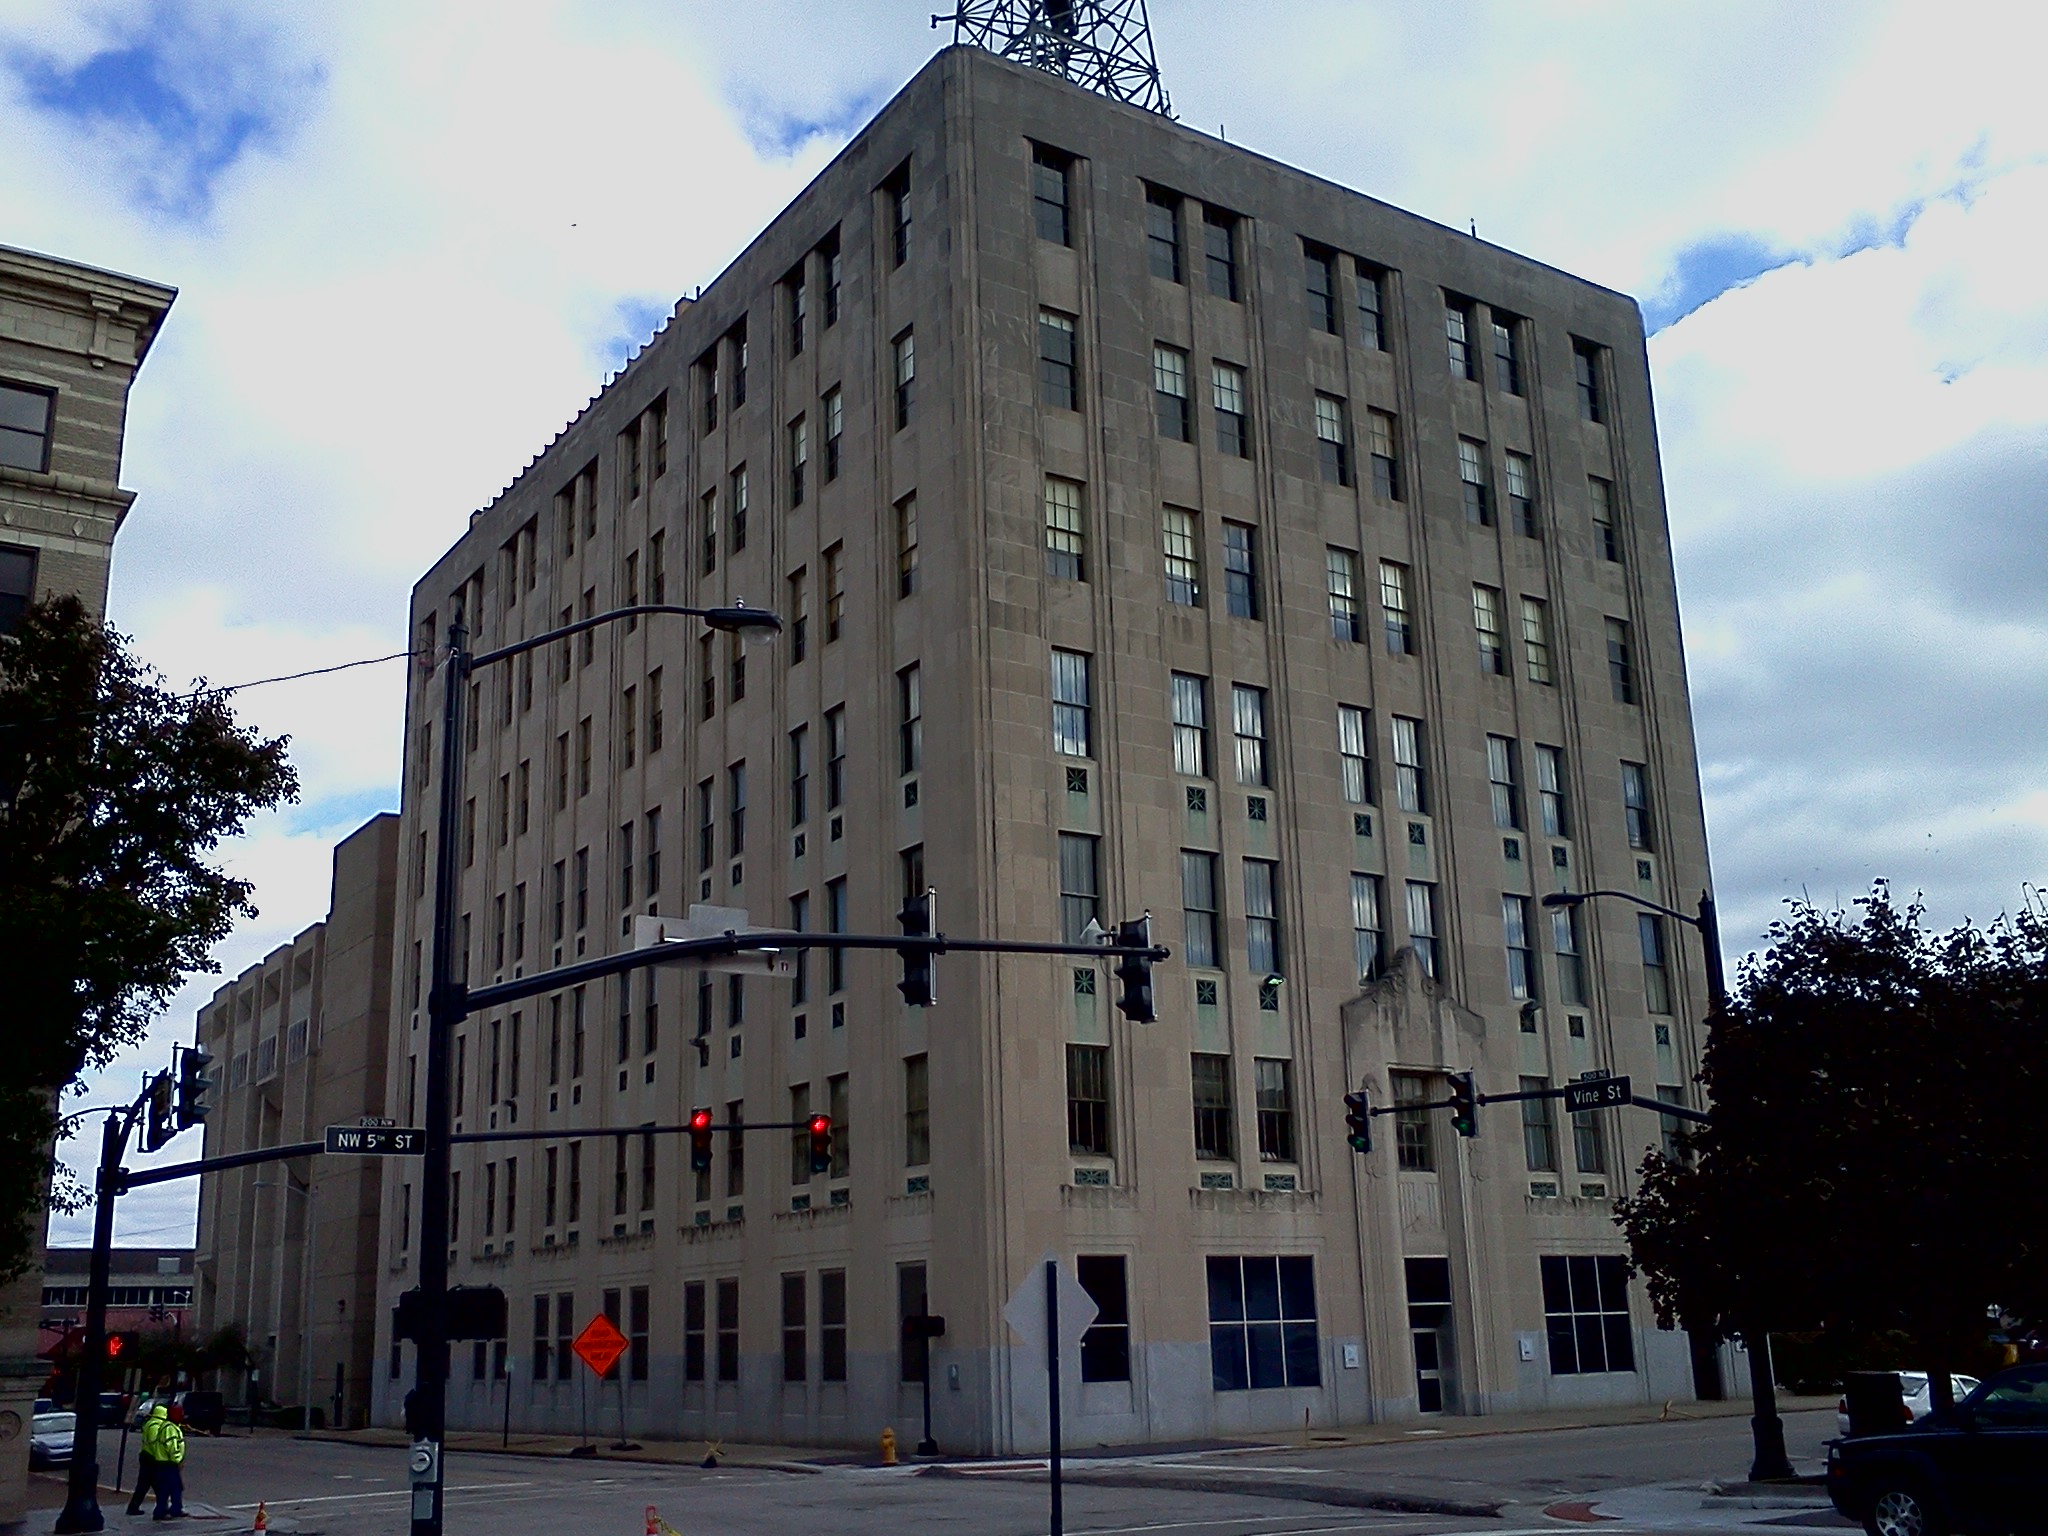 Indiana Bell Building